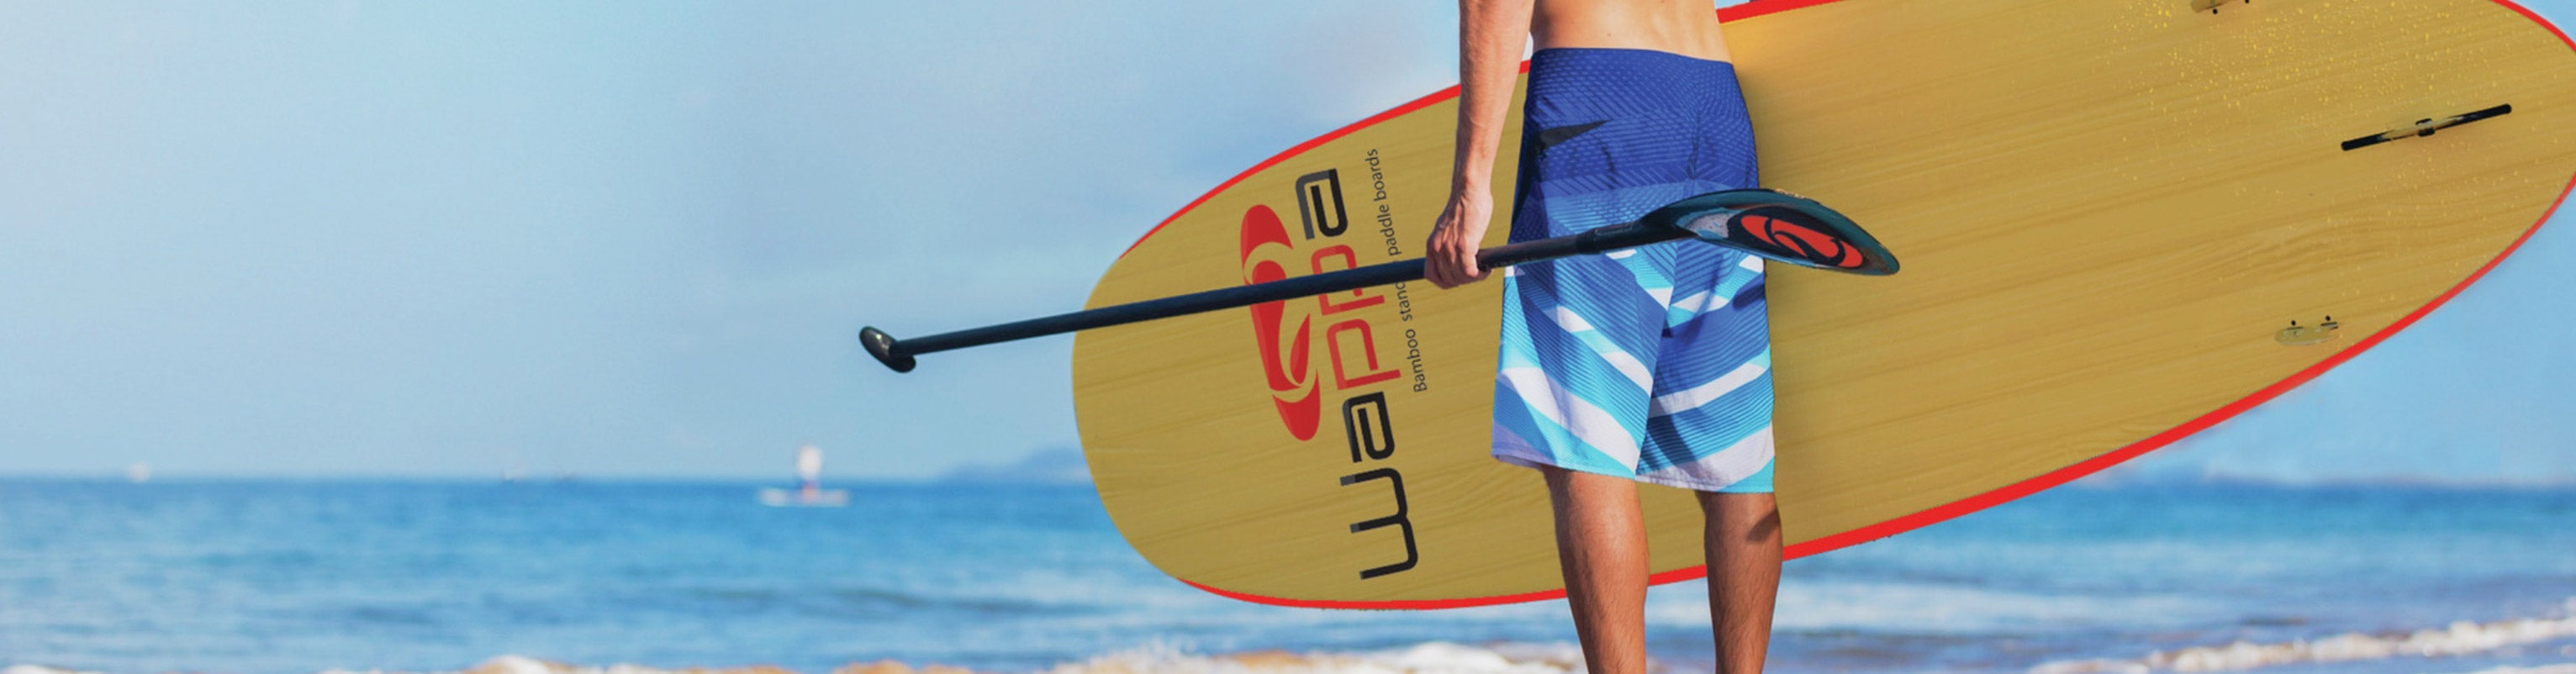 Wappa Paddle Boards For Sale LiquidWild Shop